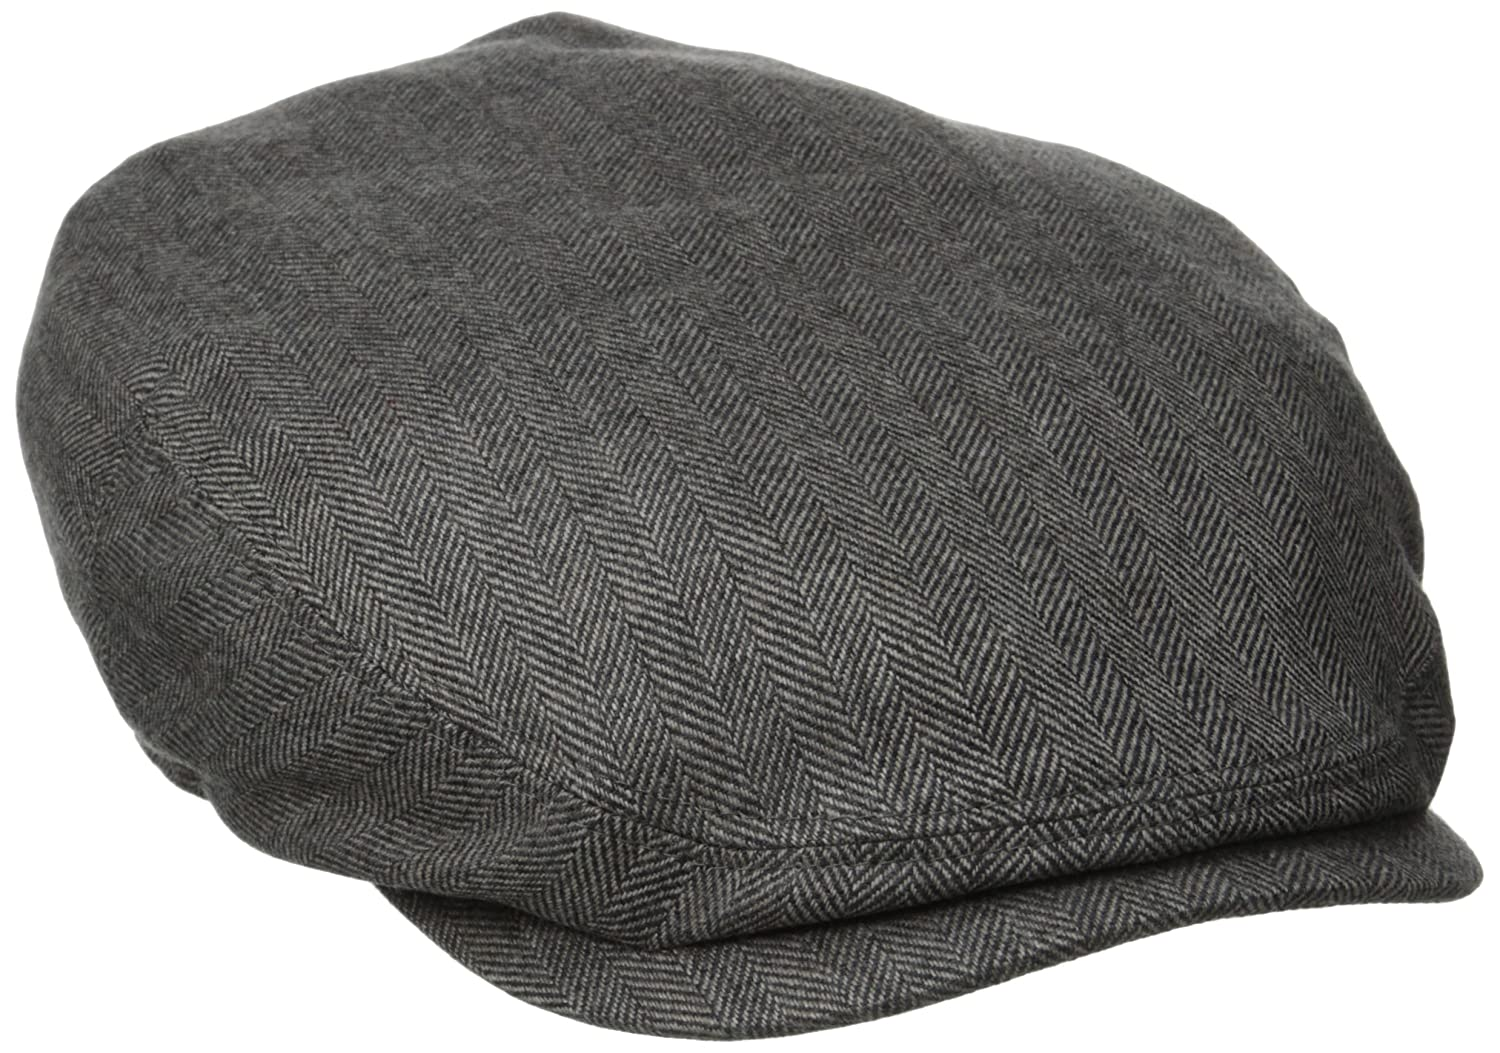 c9e10015768 Stetson Men s Cashmere Blend Ivy Cap with Silk Lining at Amazon Men s  Clothing store